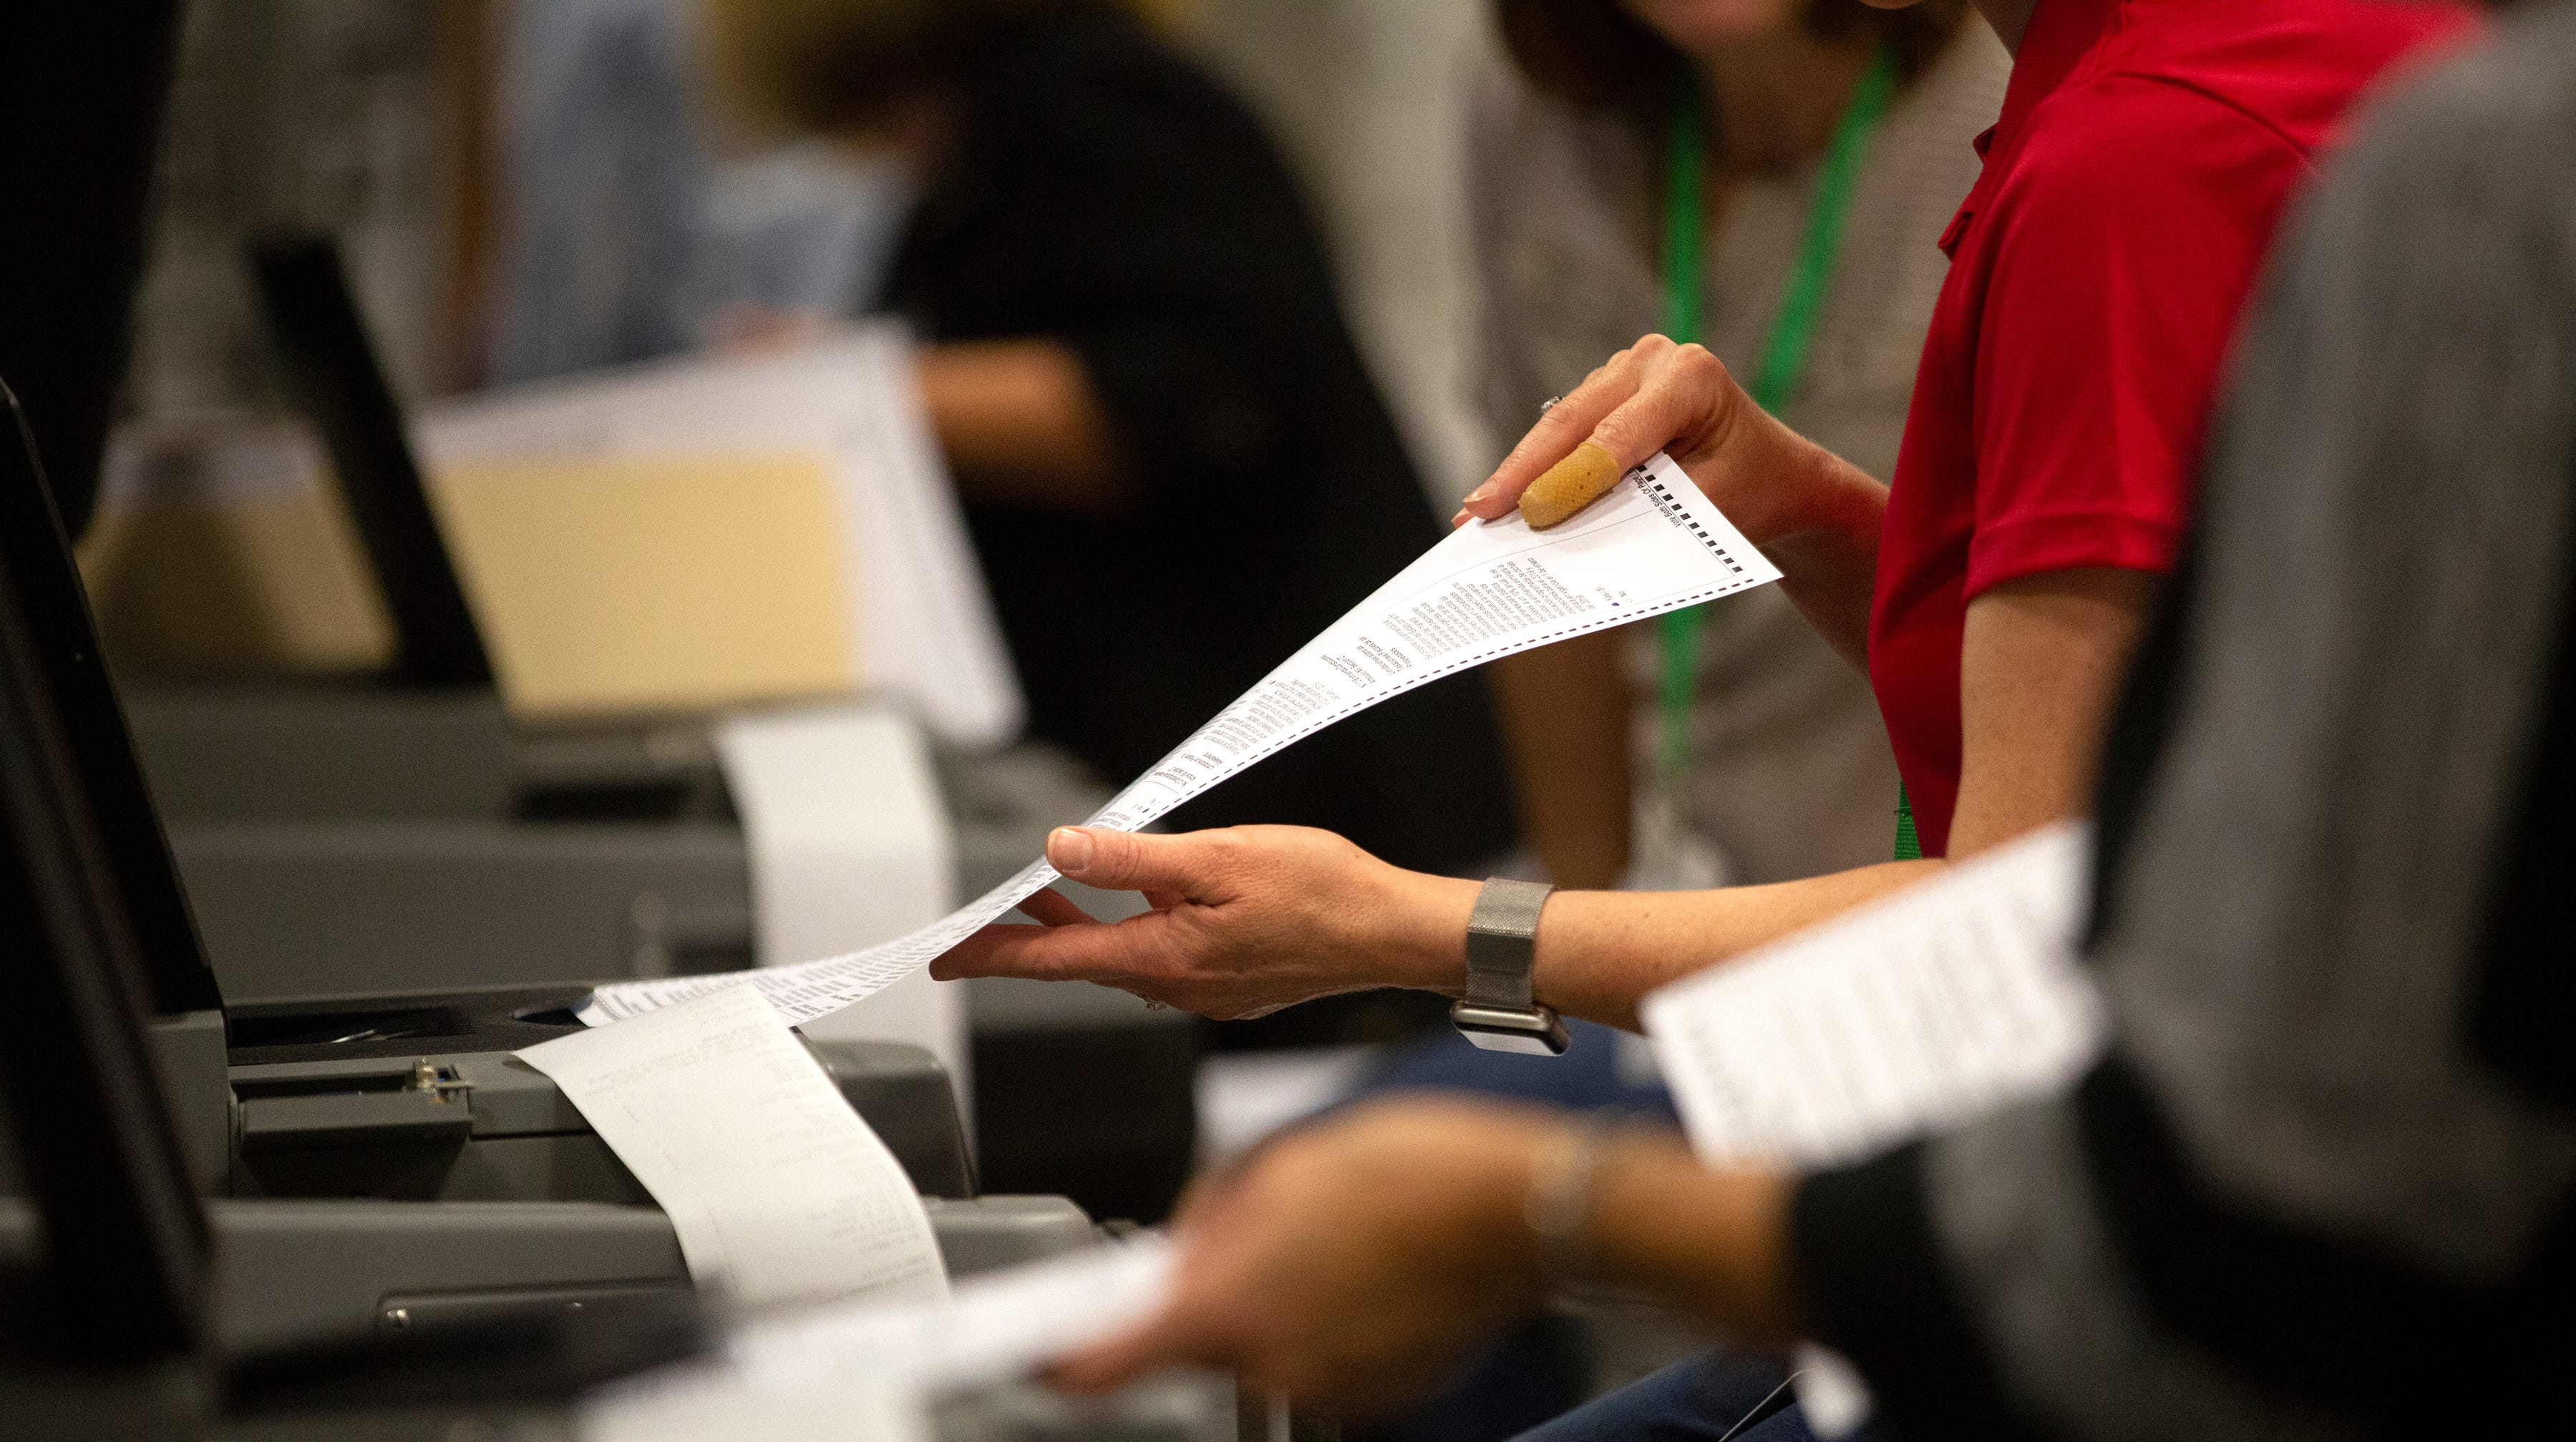 Election workers feed ballots in to voting machines, during an election recount at Monday, Nov. 12, 2018 in Naples, Florida.